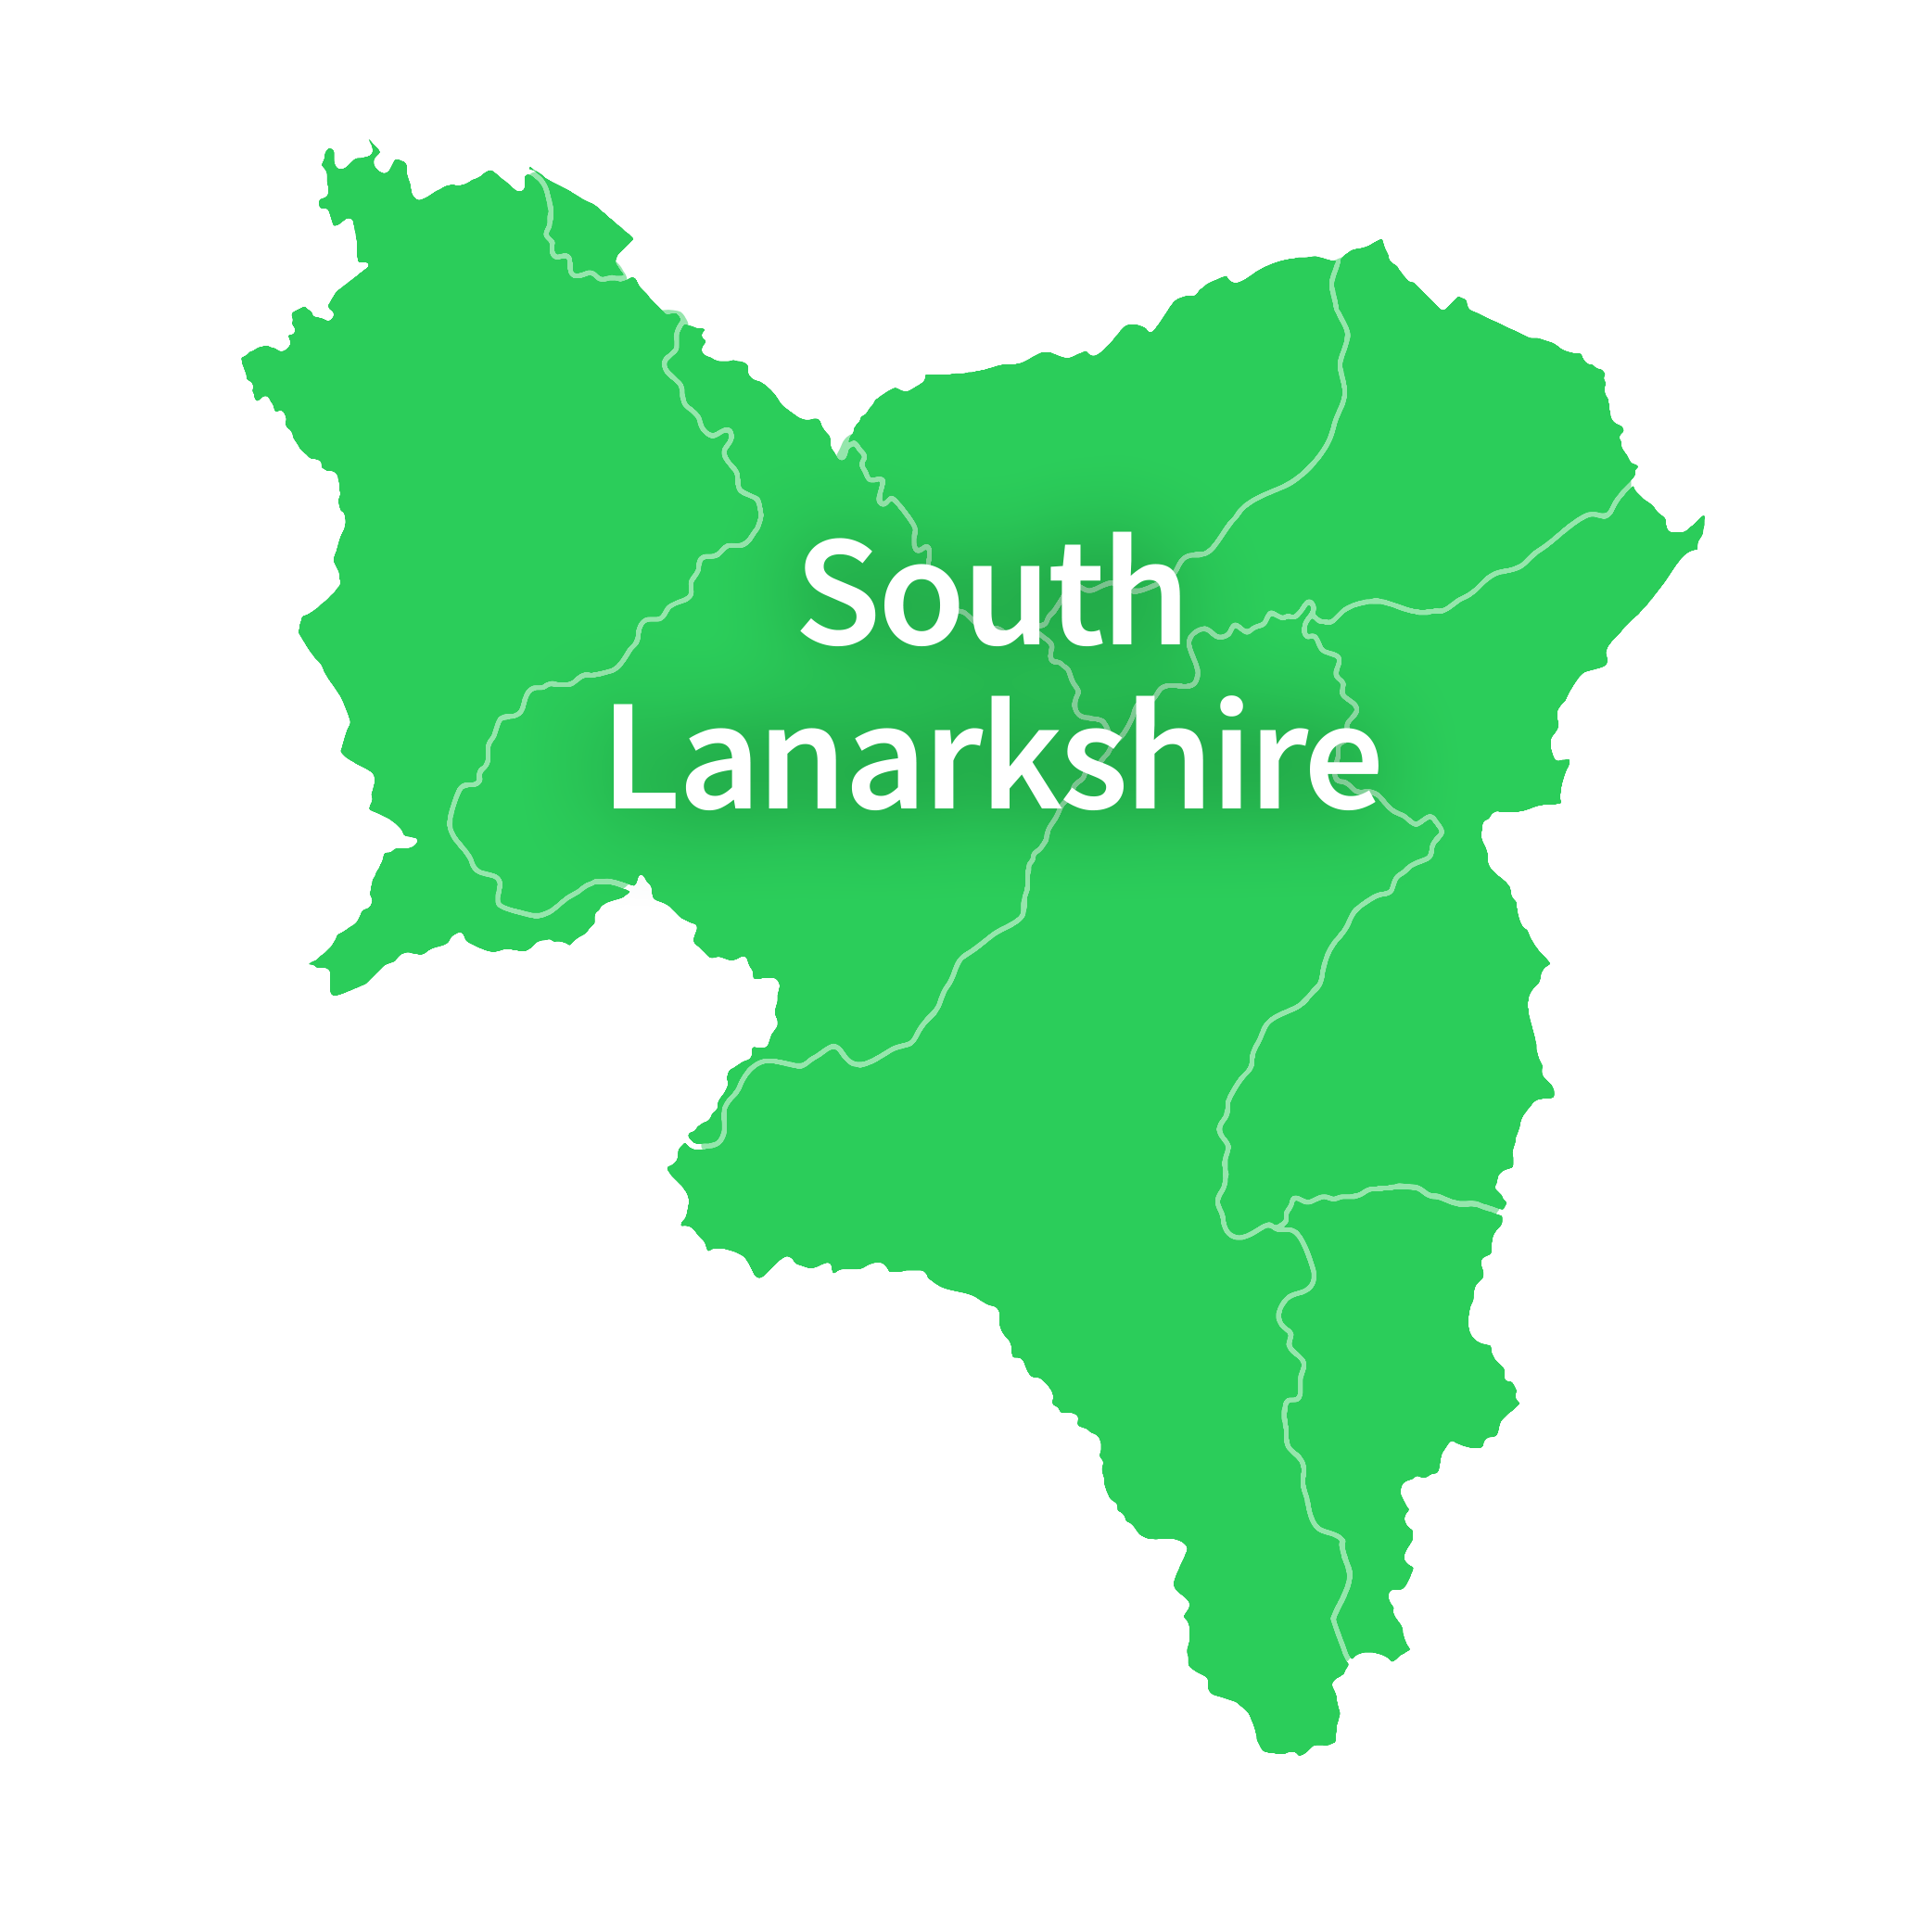 Map of South Lanarkshire